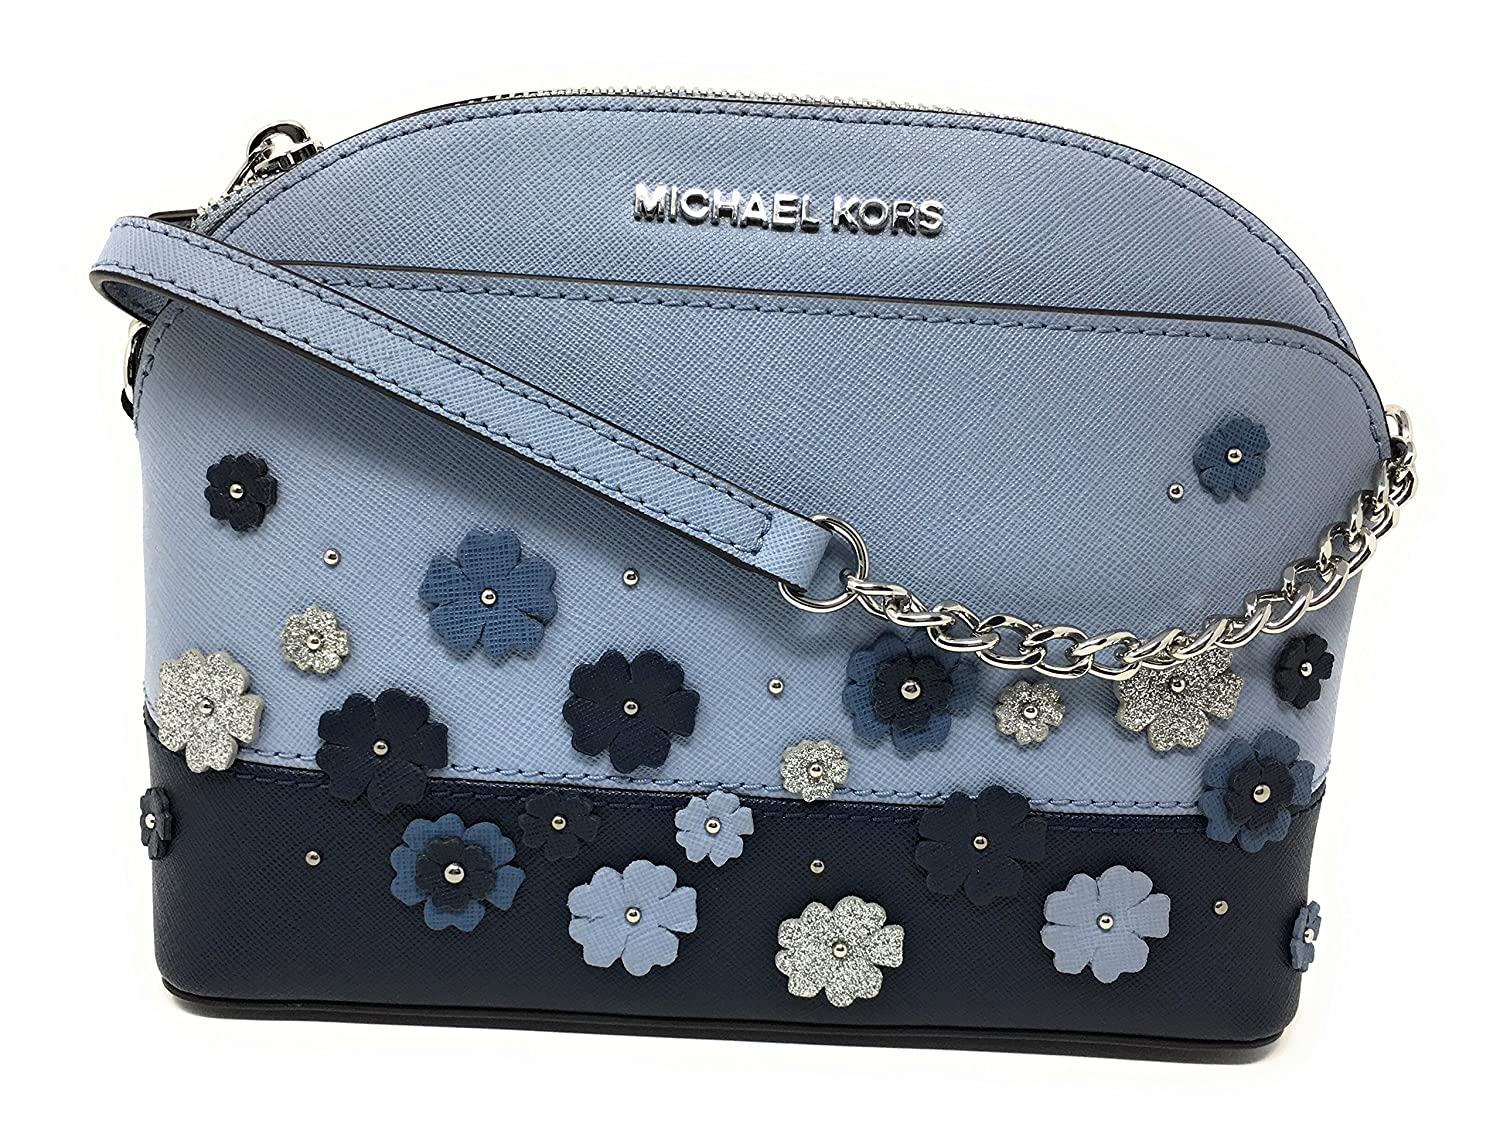 69c115234165 Michael Kors Emmy Floral Saffiano Leather Medium Crossbody Bag Pale Blue  Navy  Handbags  Amazon.com